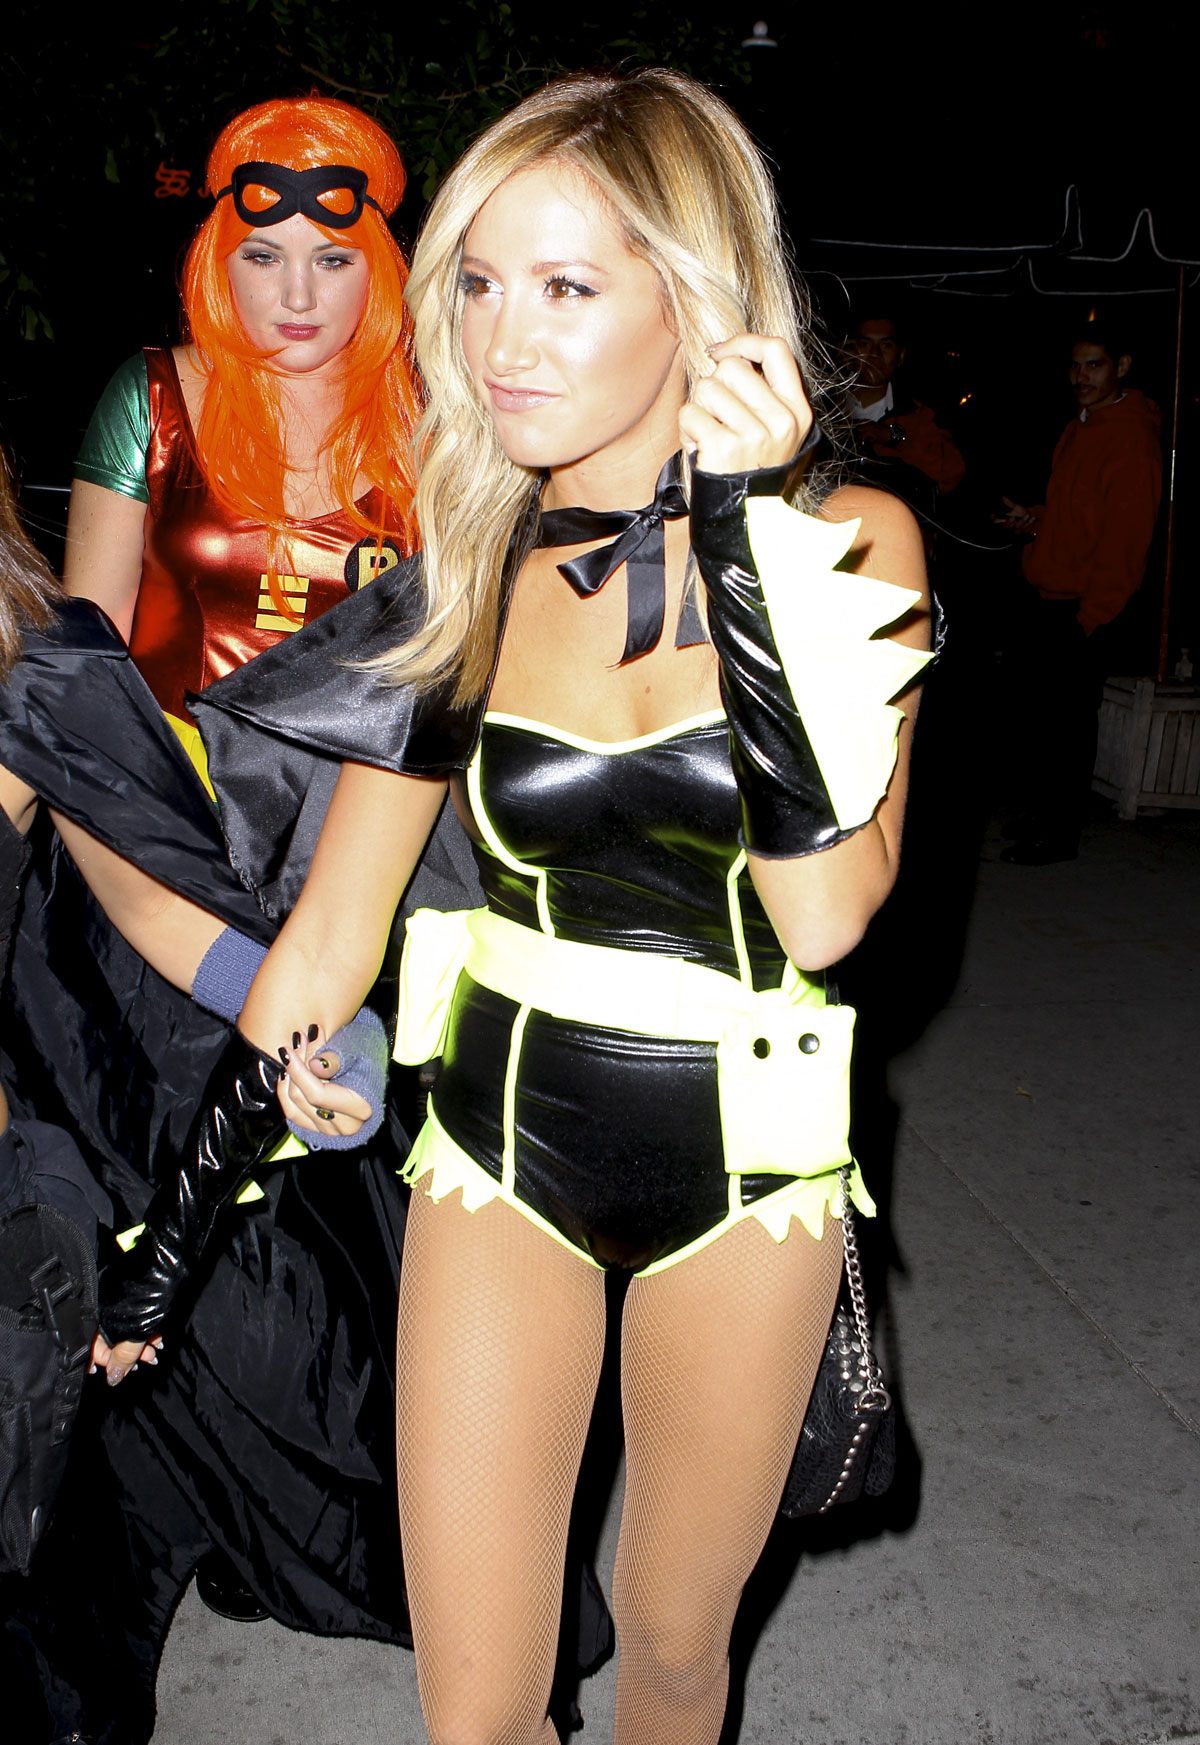 ASHLEY TISDALE at Halloween Party in Los Angeles - HawtCelebs ...